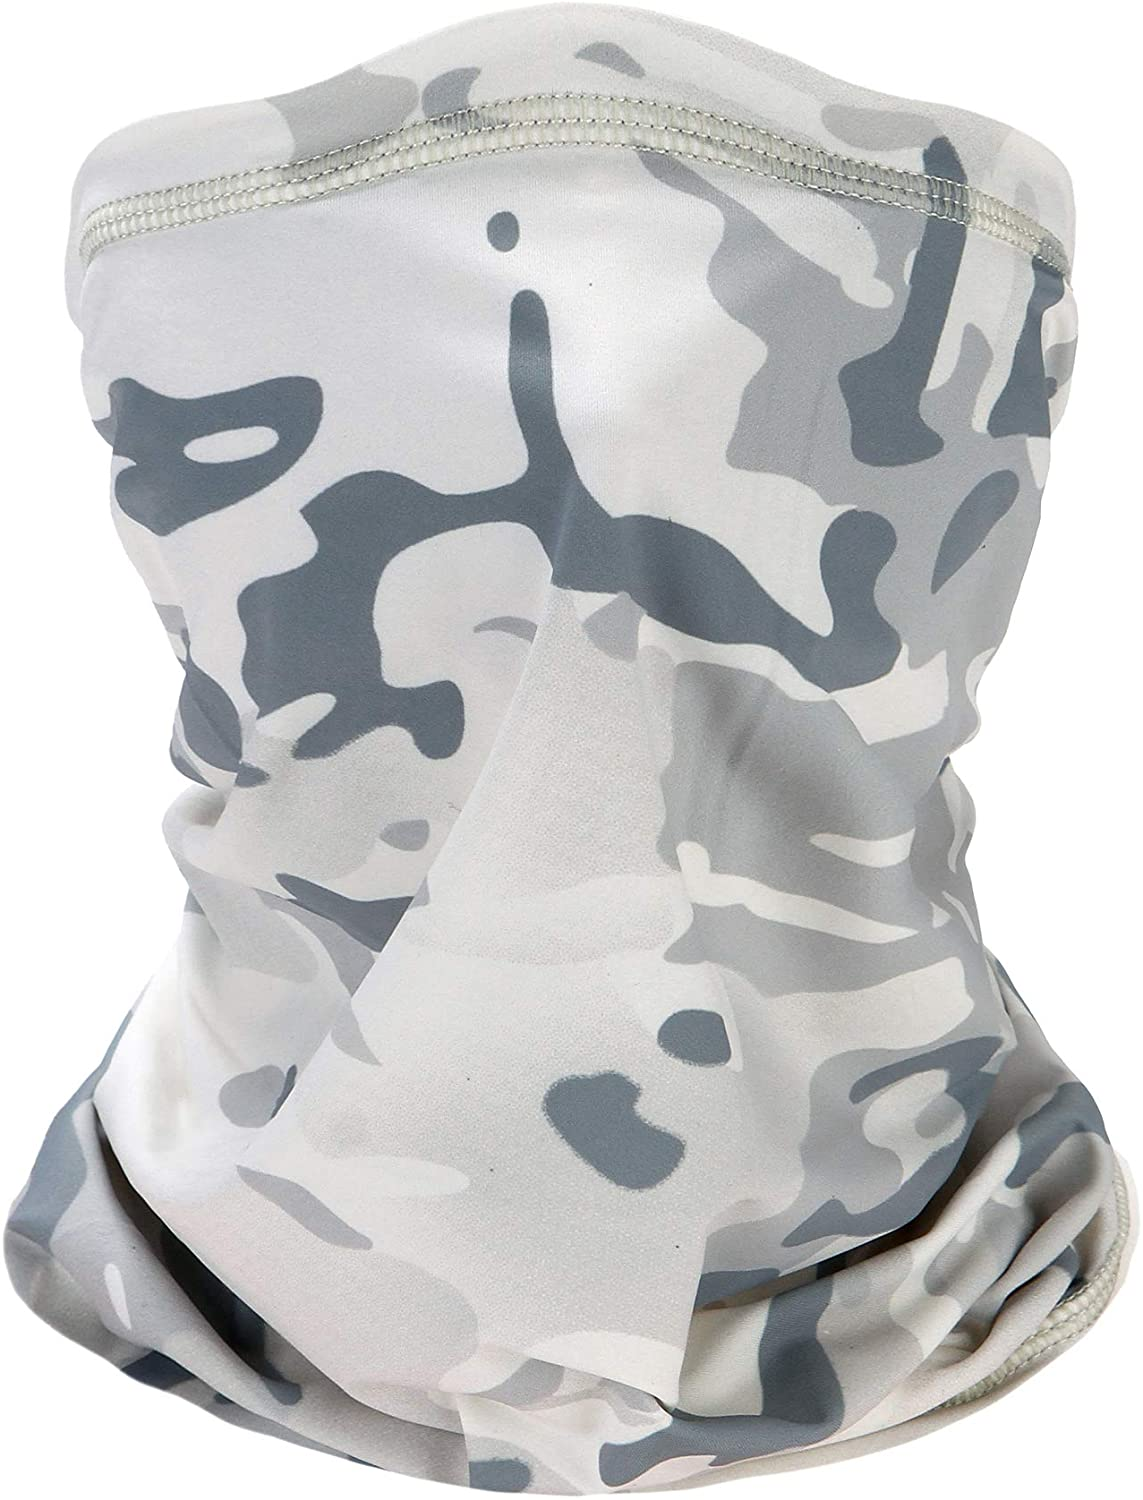 Multifunctional Face Mask Anti Dust Wind UV Sun Neck Headwear Bandana Camouflage